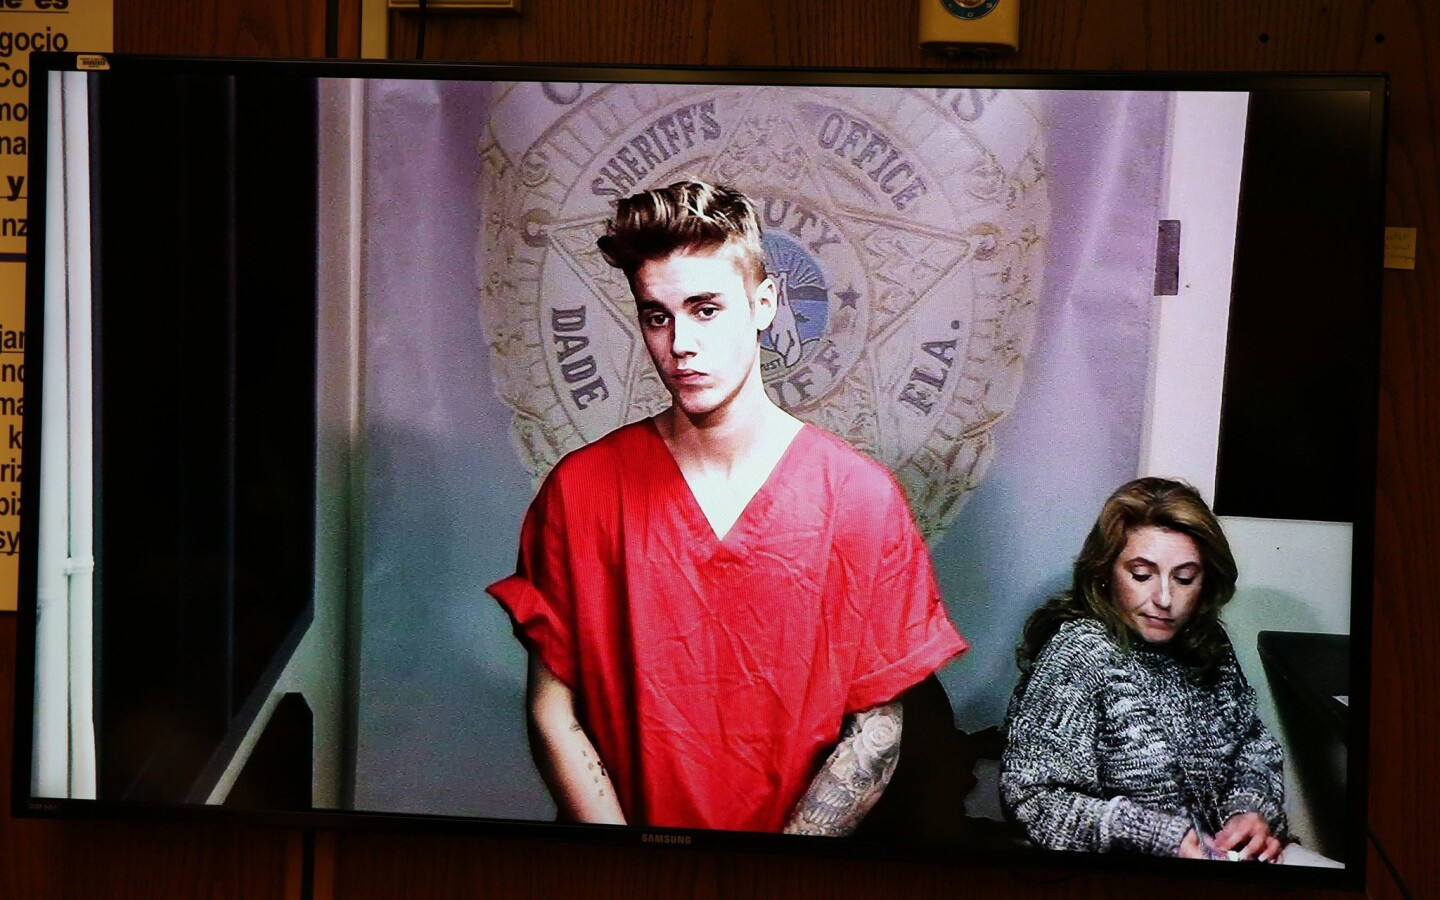 Justin Bieber appeared briefly in front of Judge Joseph Farina, via video, clad in red jail-issued scrubs at Miami-Dade Circuit Court in Florida. Bond was set at $2,500.